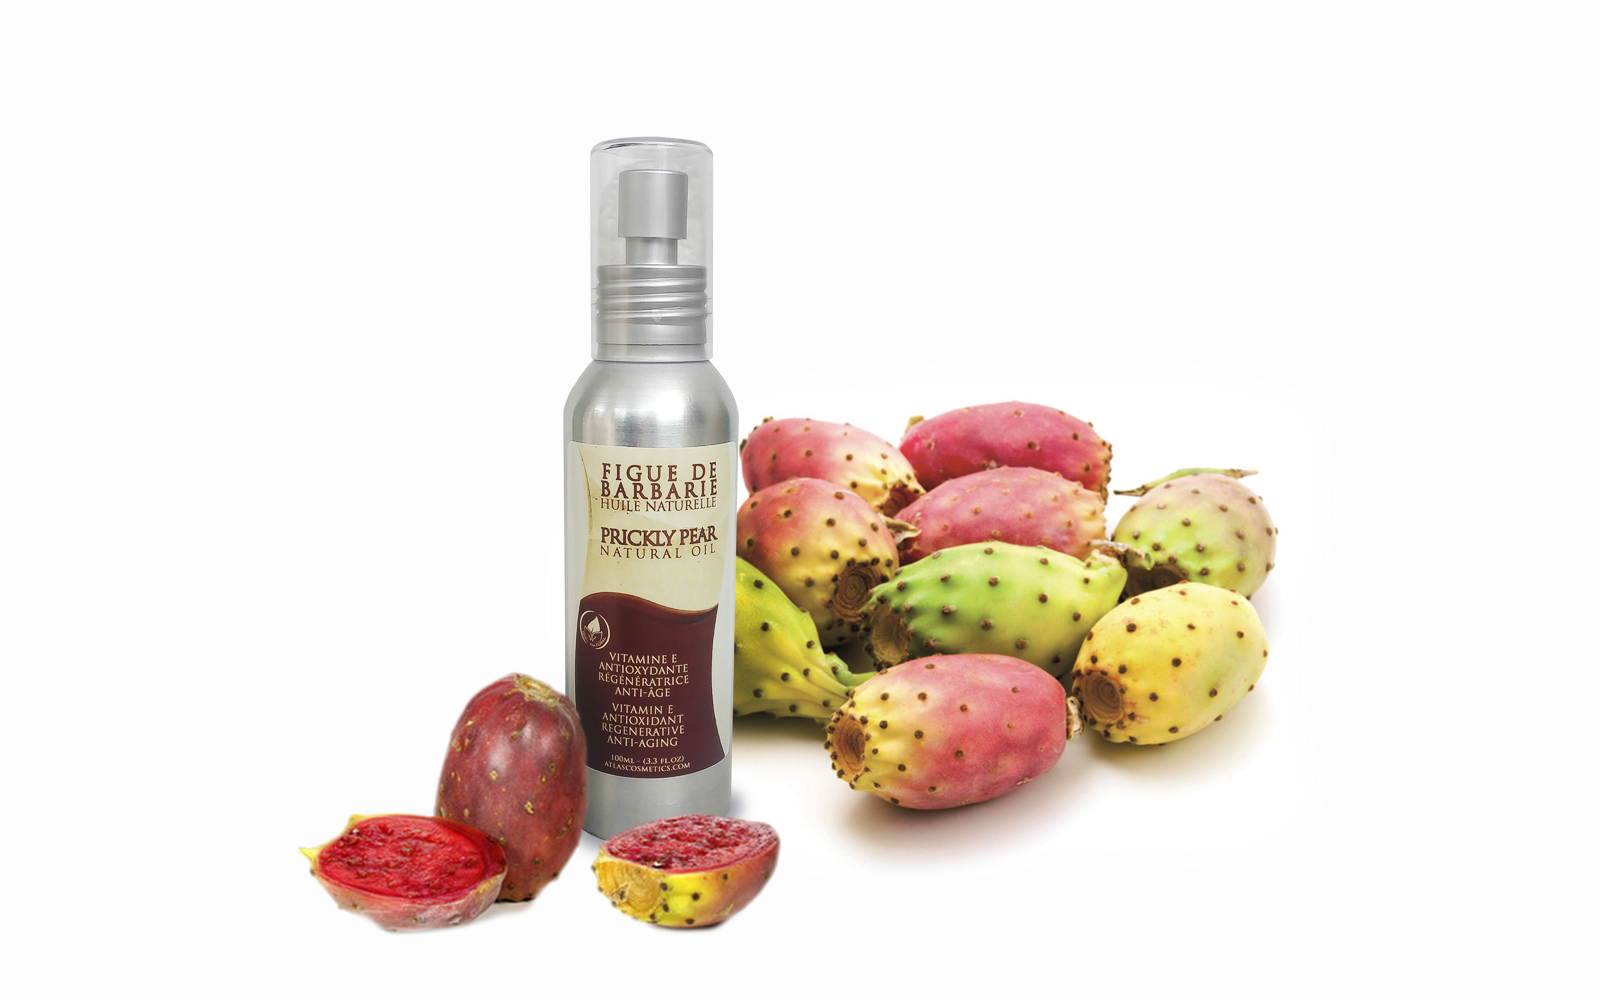 prickly pear seeds natural oil by atlas cosmetics